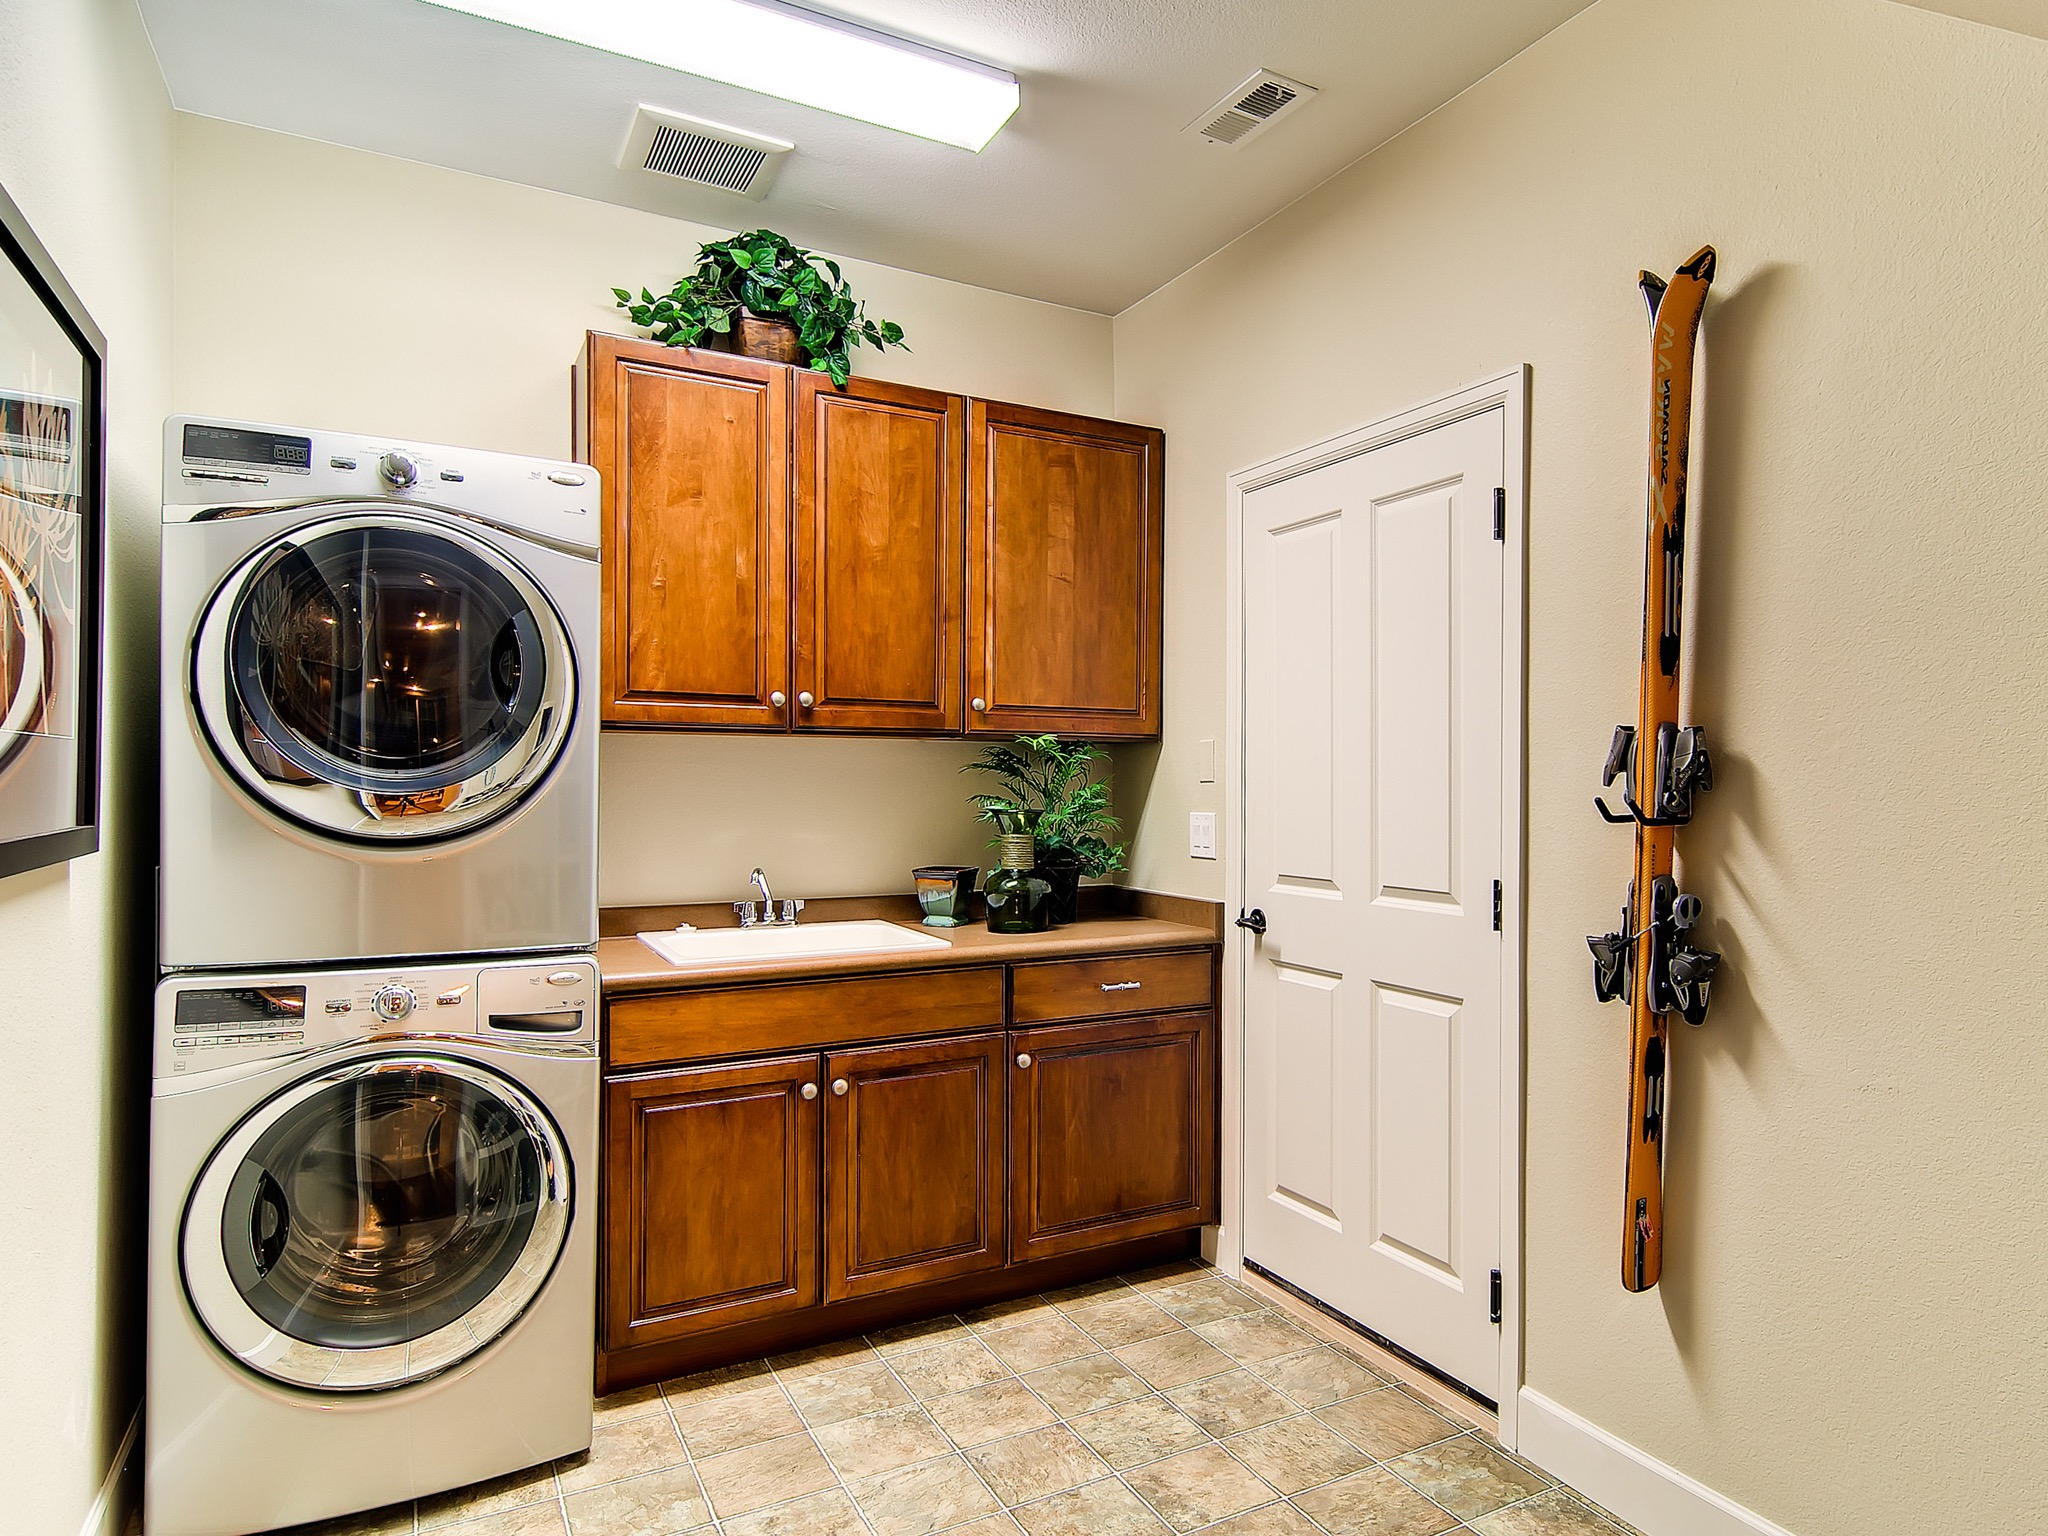 Wooden Laundry Room Storages Cabinet (View 13 of 20)